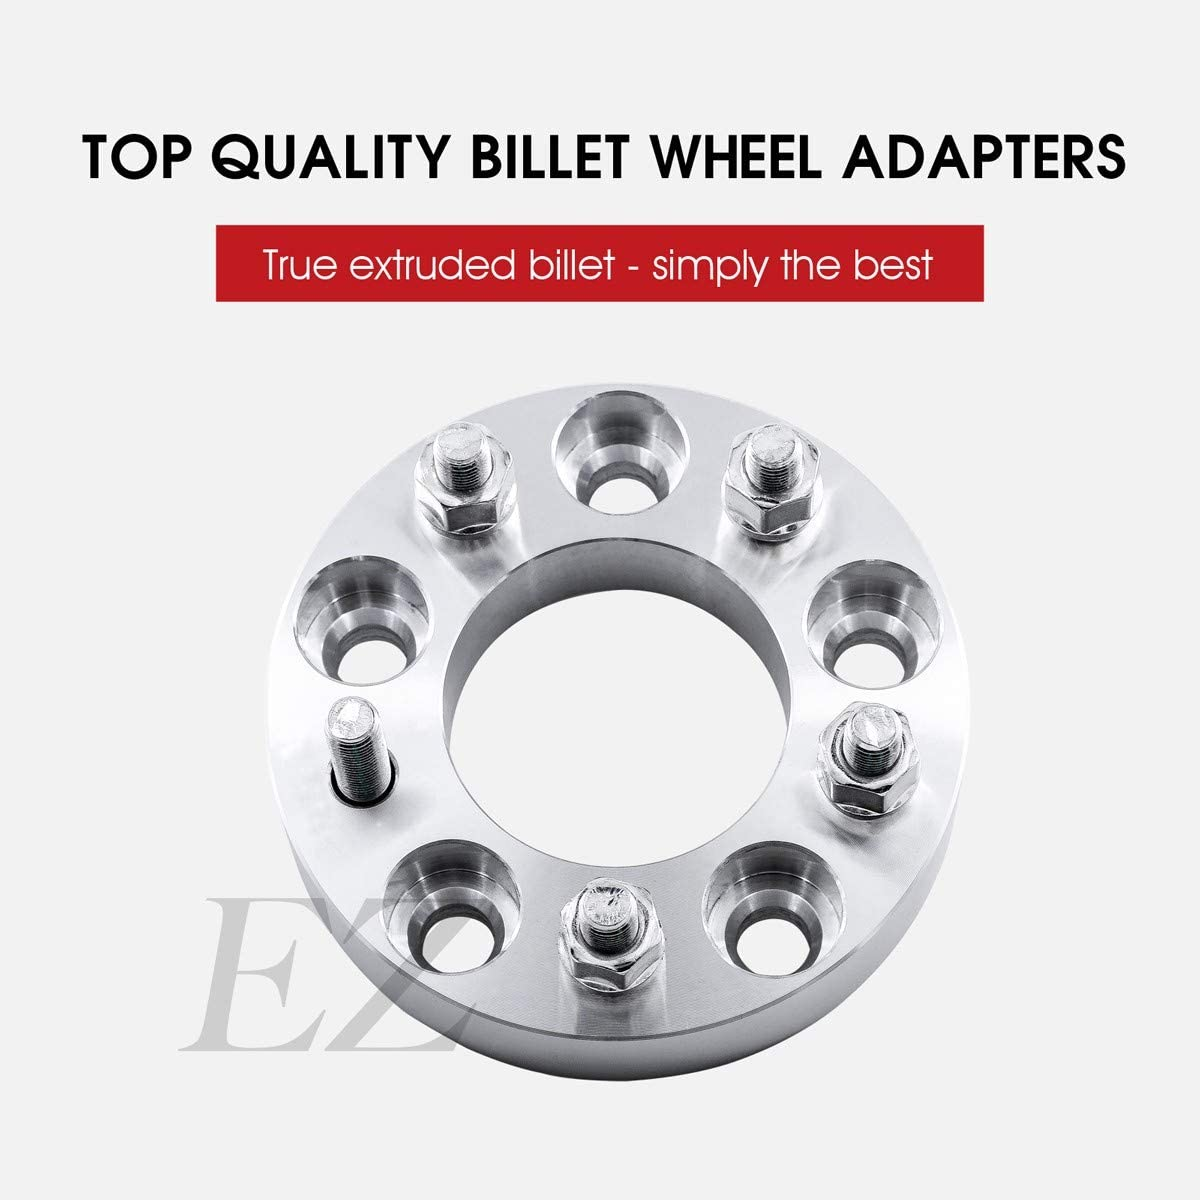 4 Billet Wheel Adapters 5 Lug 4.5 to 5 Lug 5.5 Thickness 2 Inch